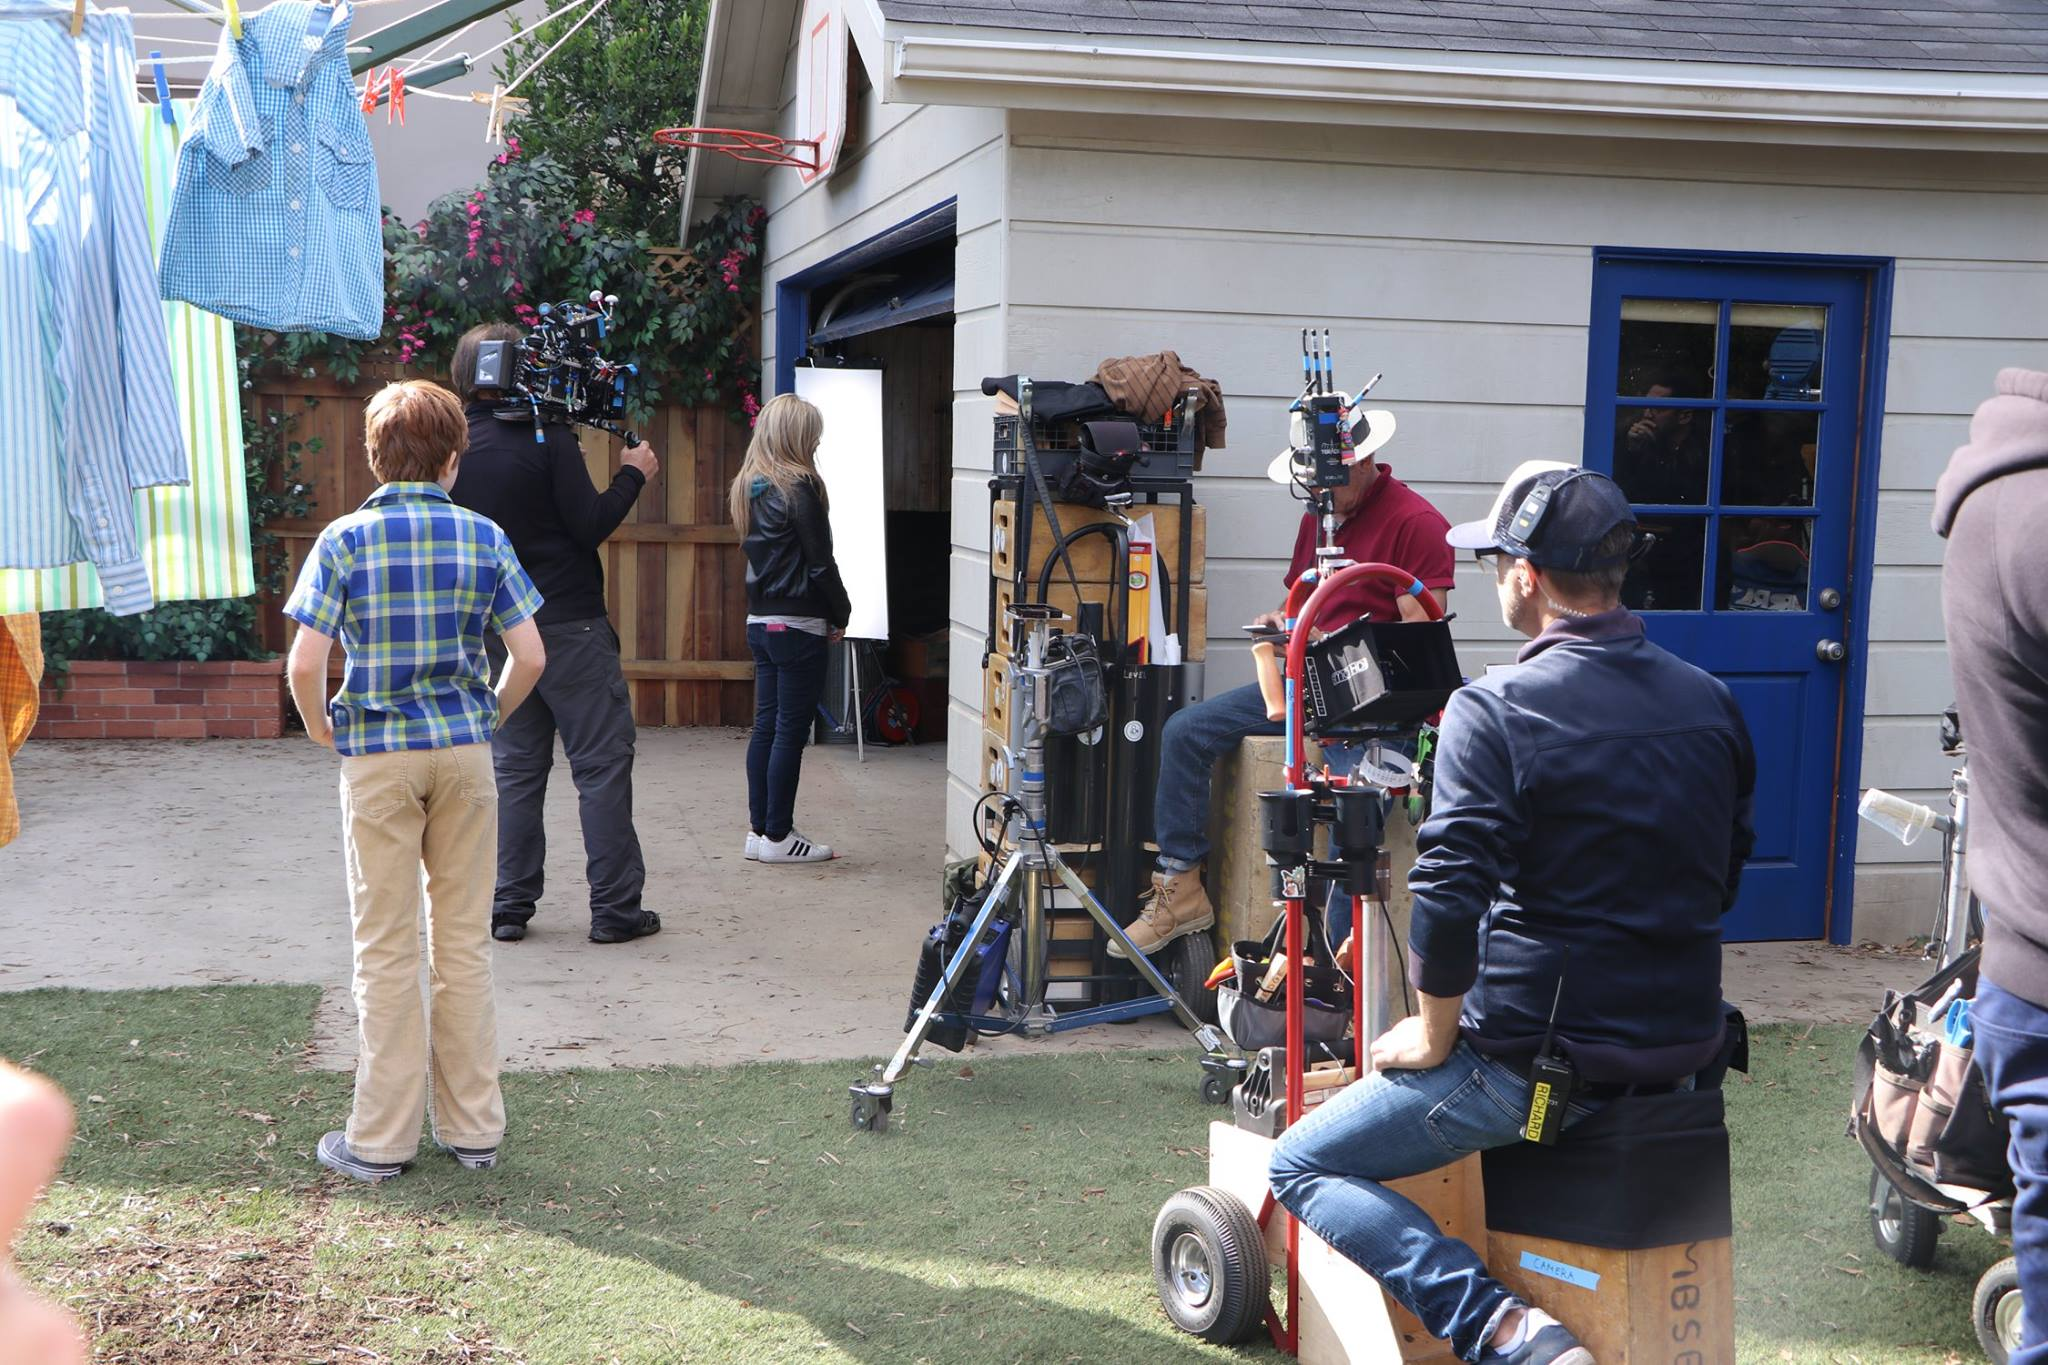 filming scene in The Kids Are Alright